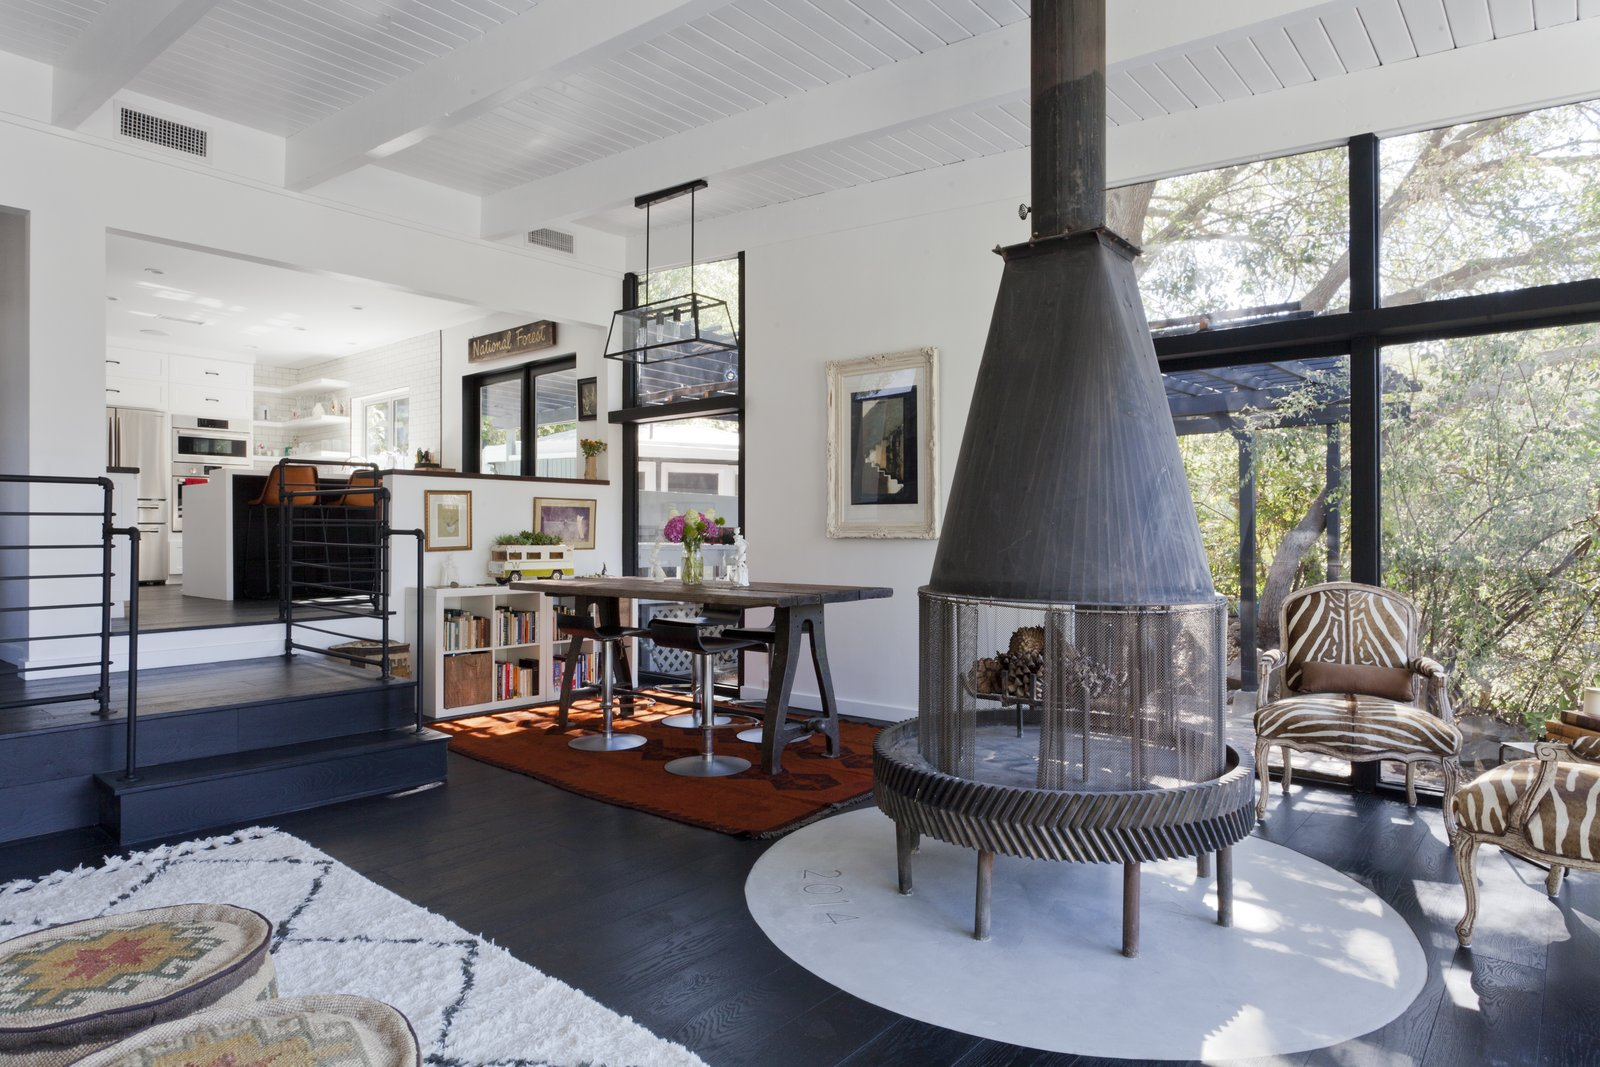 The Chandler Farms Residence by CHANDLER FARMS